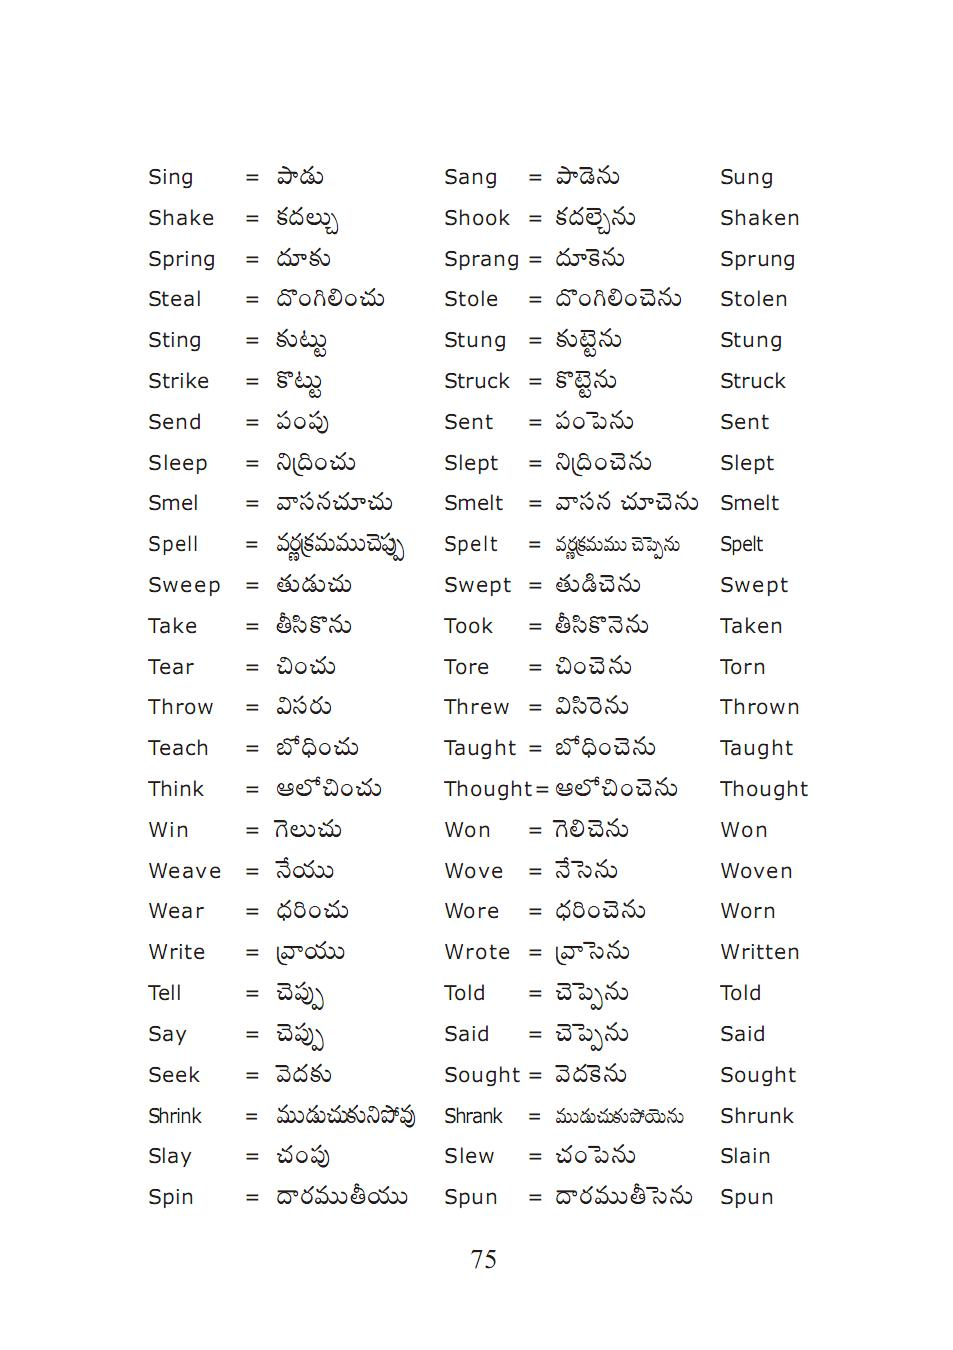 English to telugu meaning list of verbs also learns and language rh learnsenglishandenglishlanguagespot